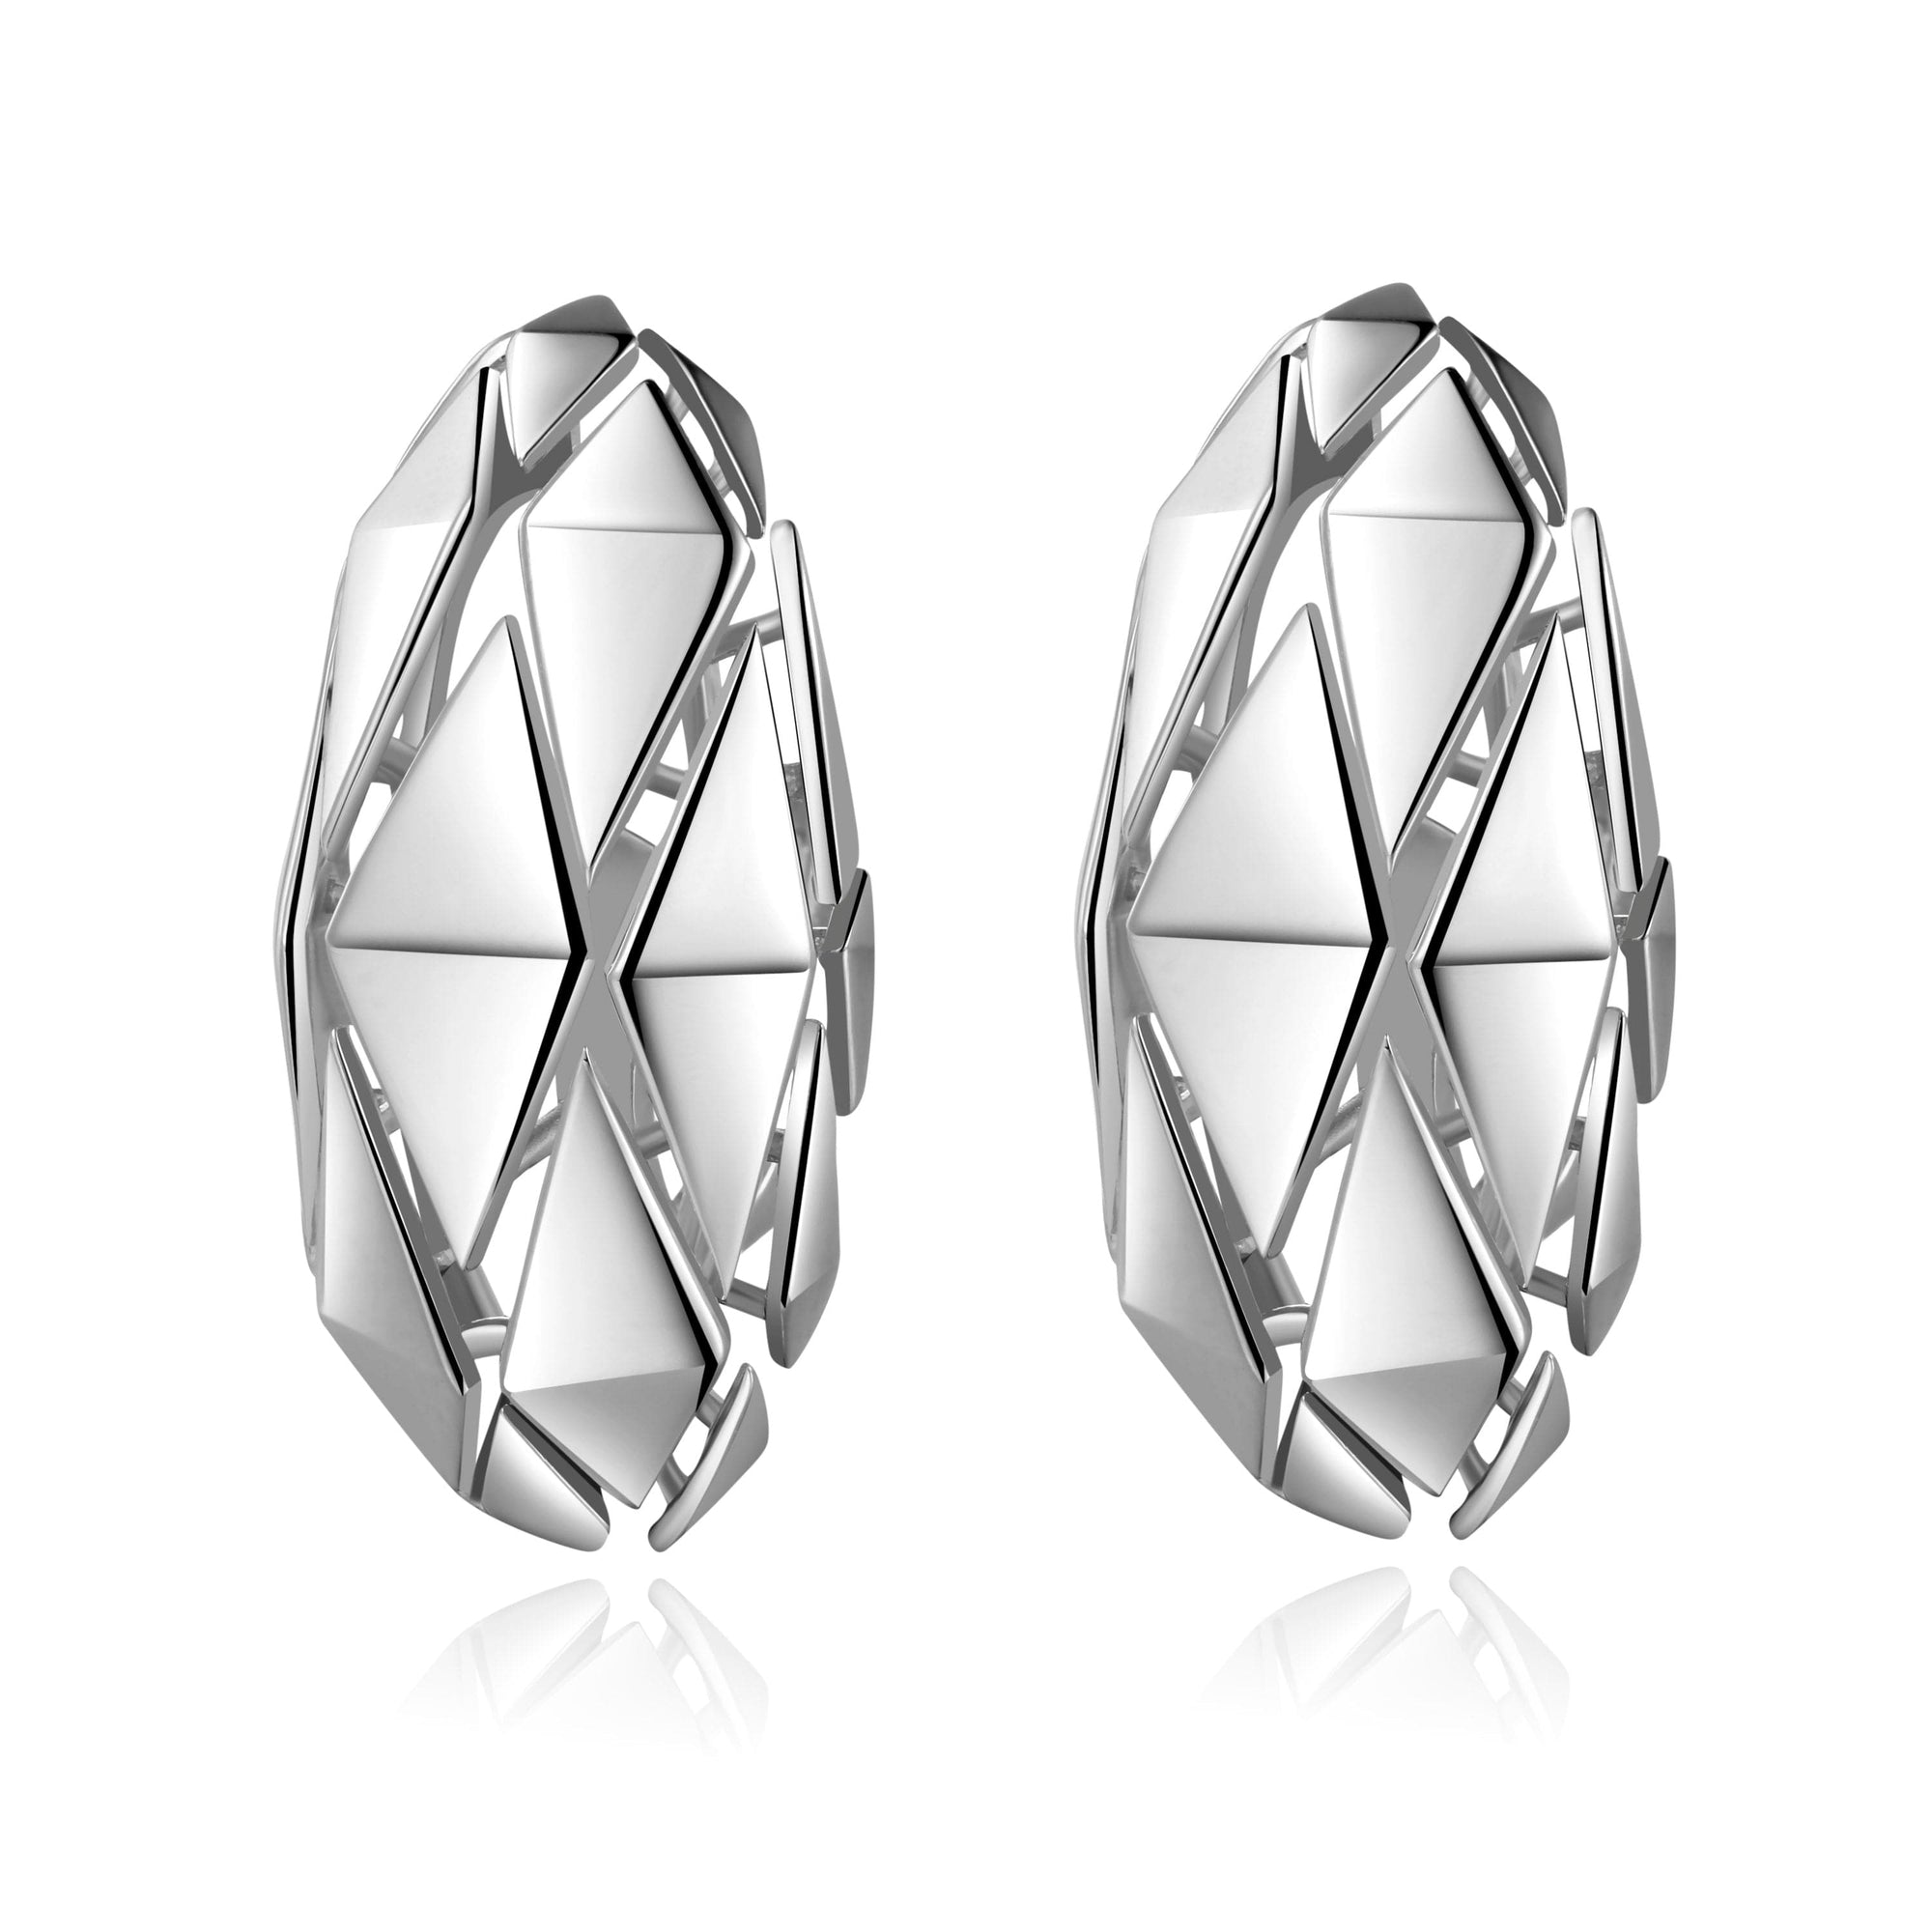 Pianegonda Sterling Silver Planus Oval Geometric Earrings